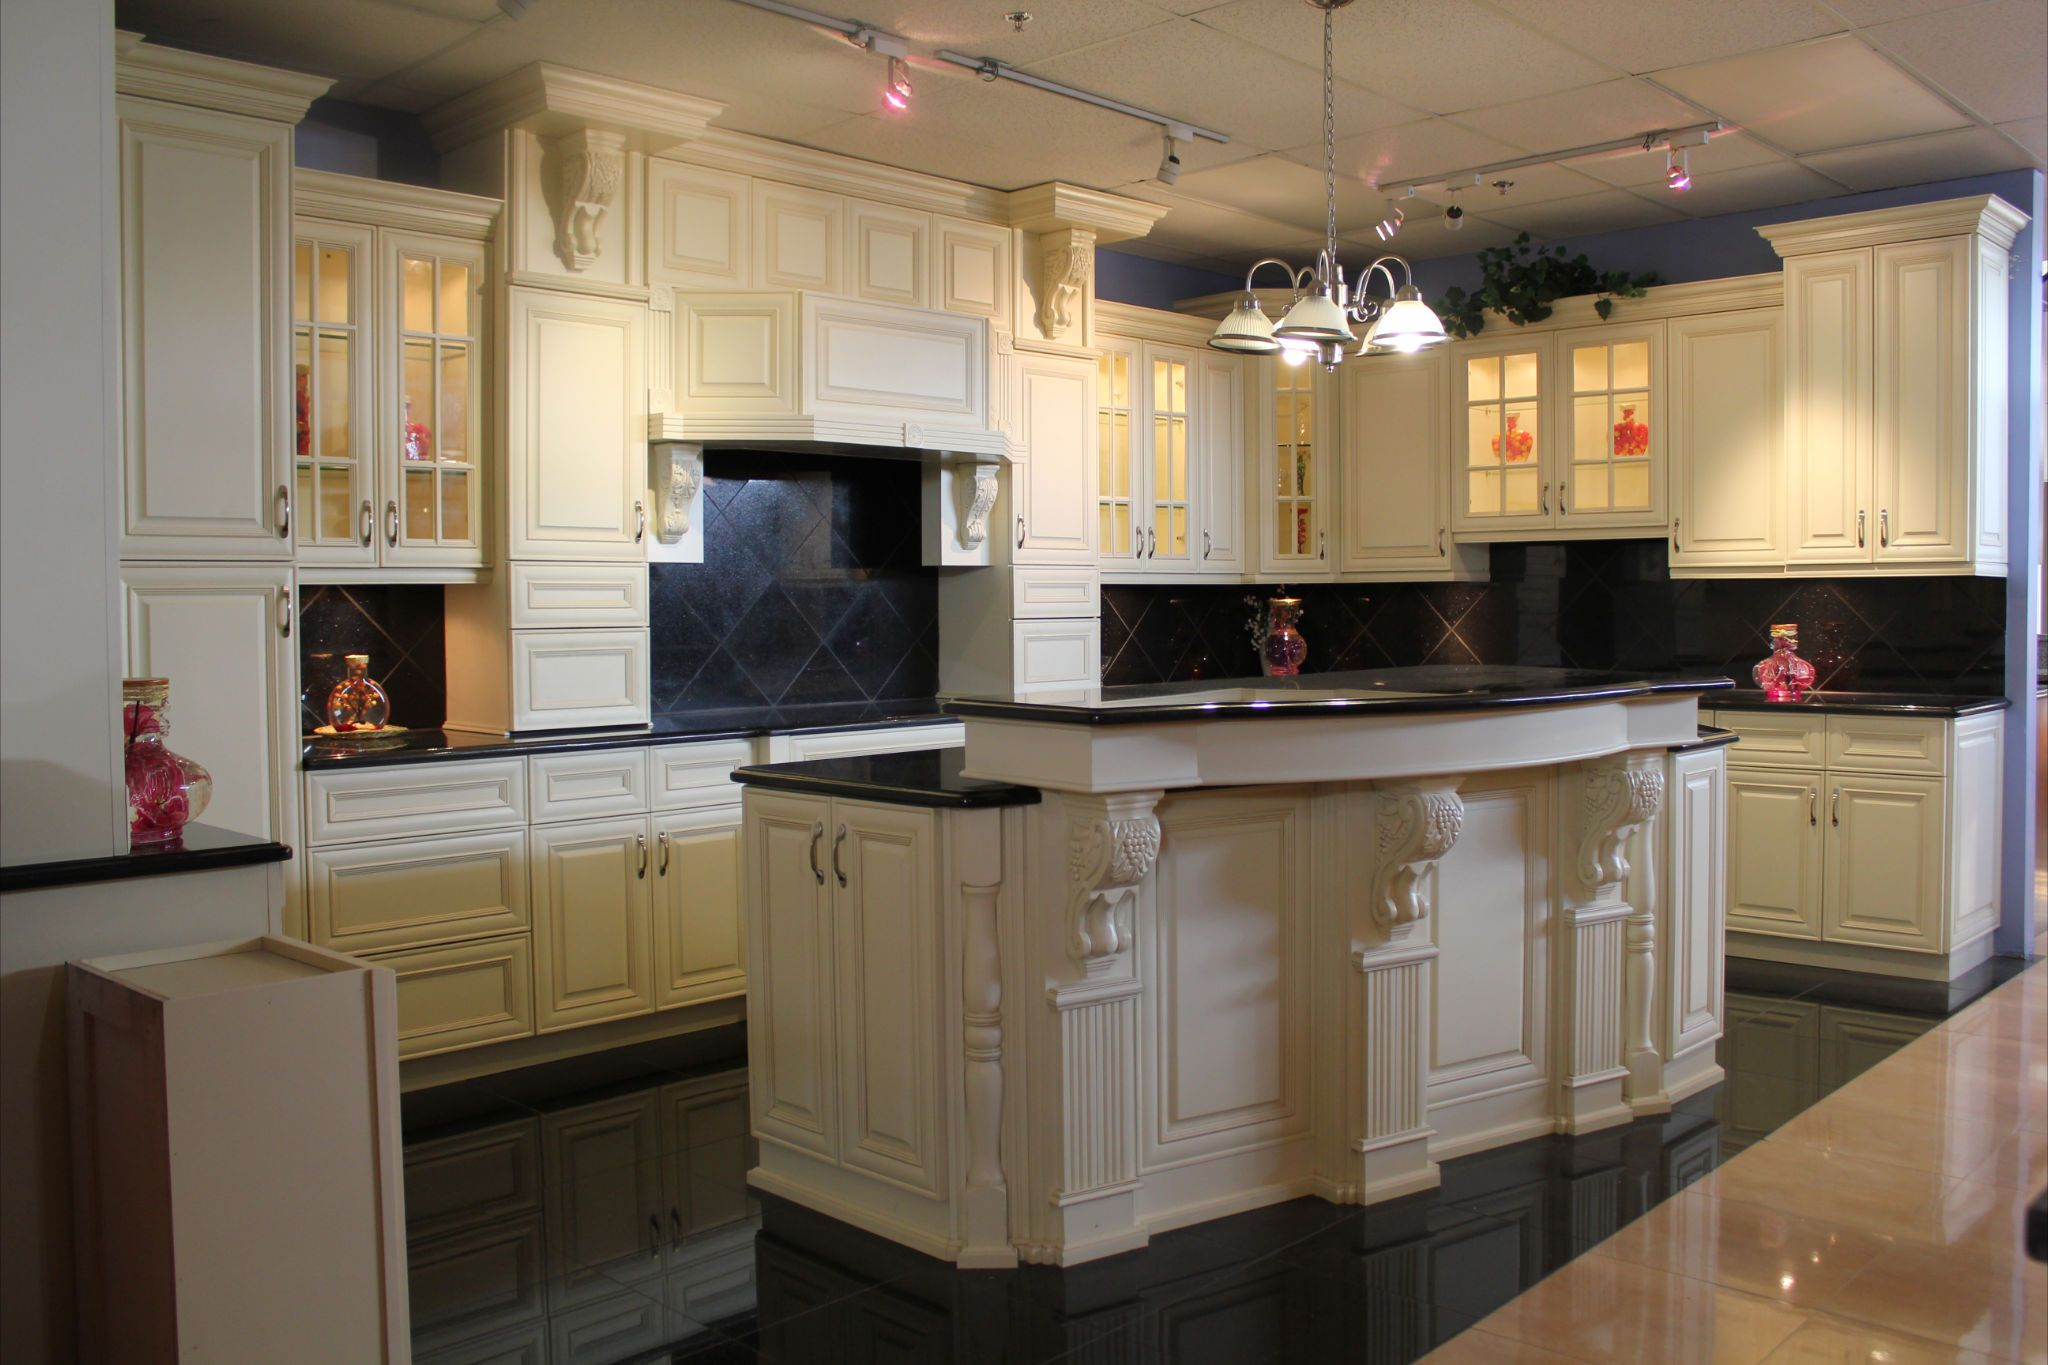 Antique White Kitchen Designs Antique White Cabinets With Black Granite Tops As Island